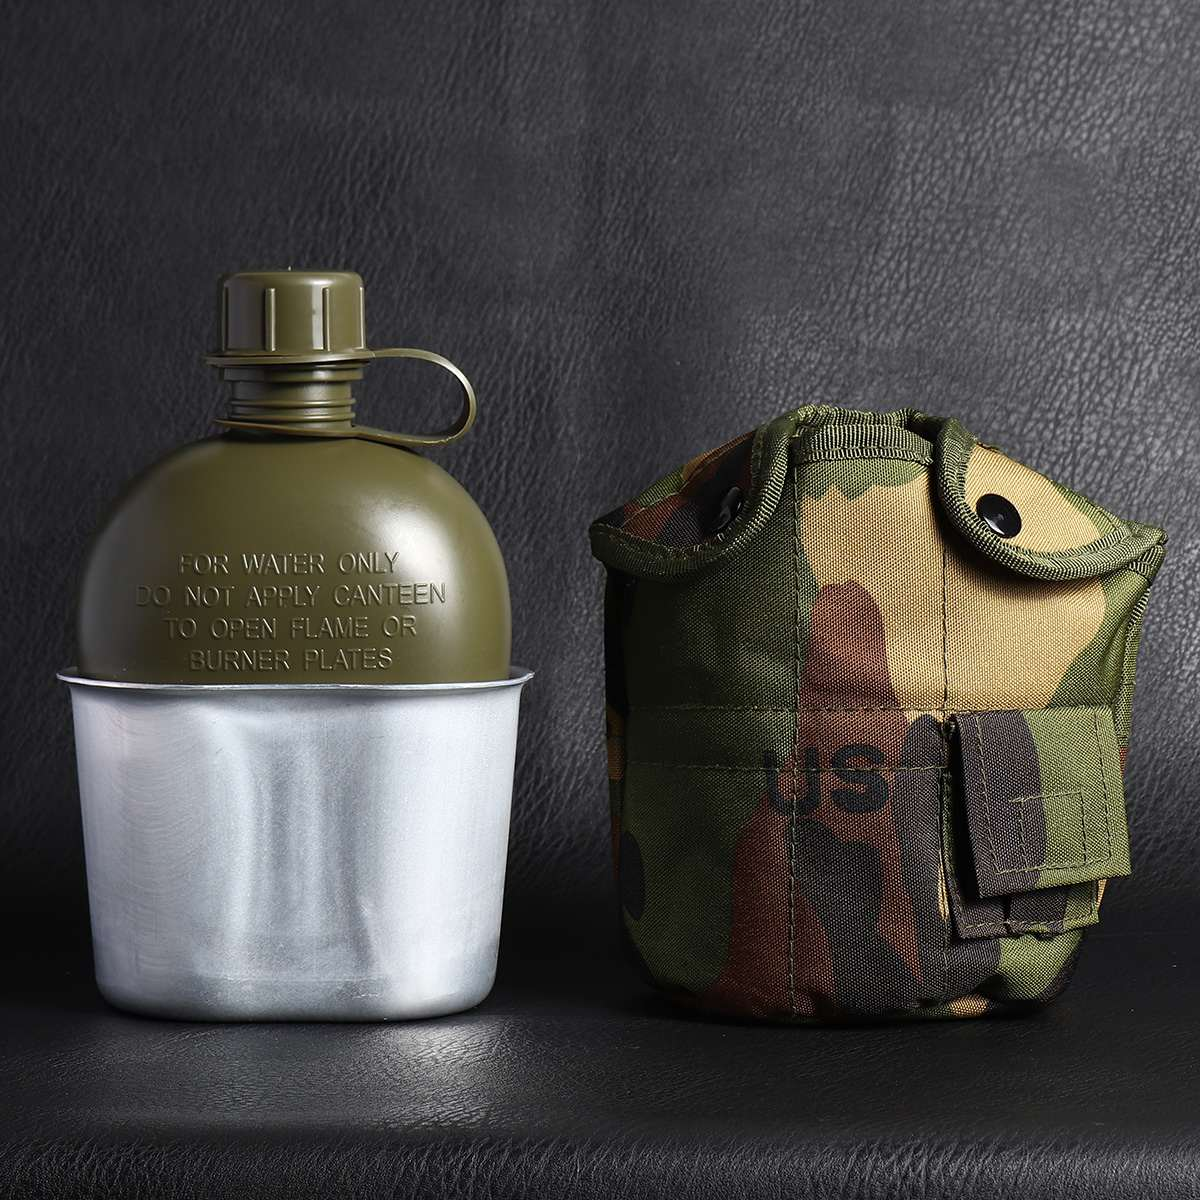 Heavy Cover Army Water Bottle Aluminum Cooking Cup Military Canteen Camping Hiking Survival Kettle Outdoor Tableware